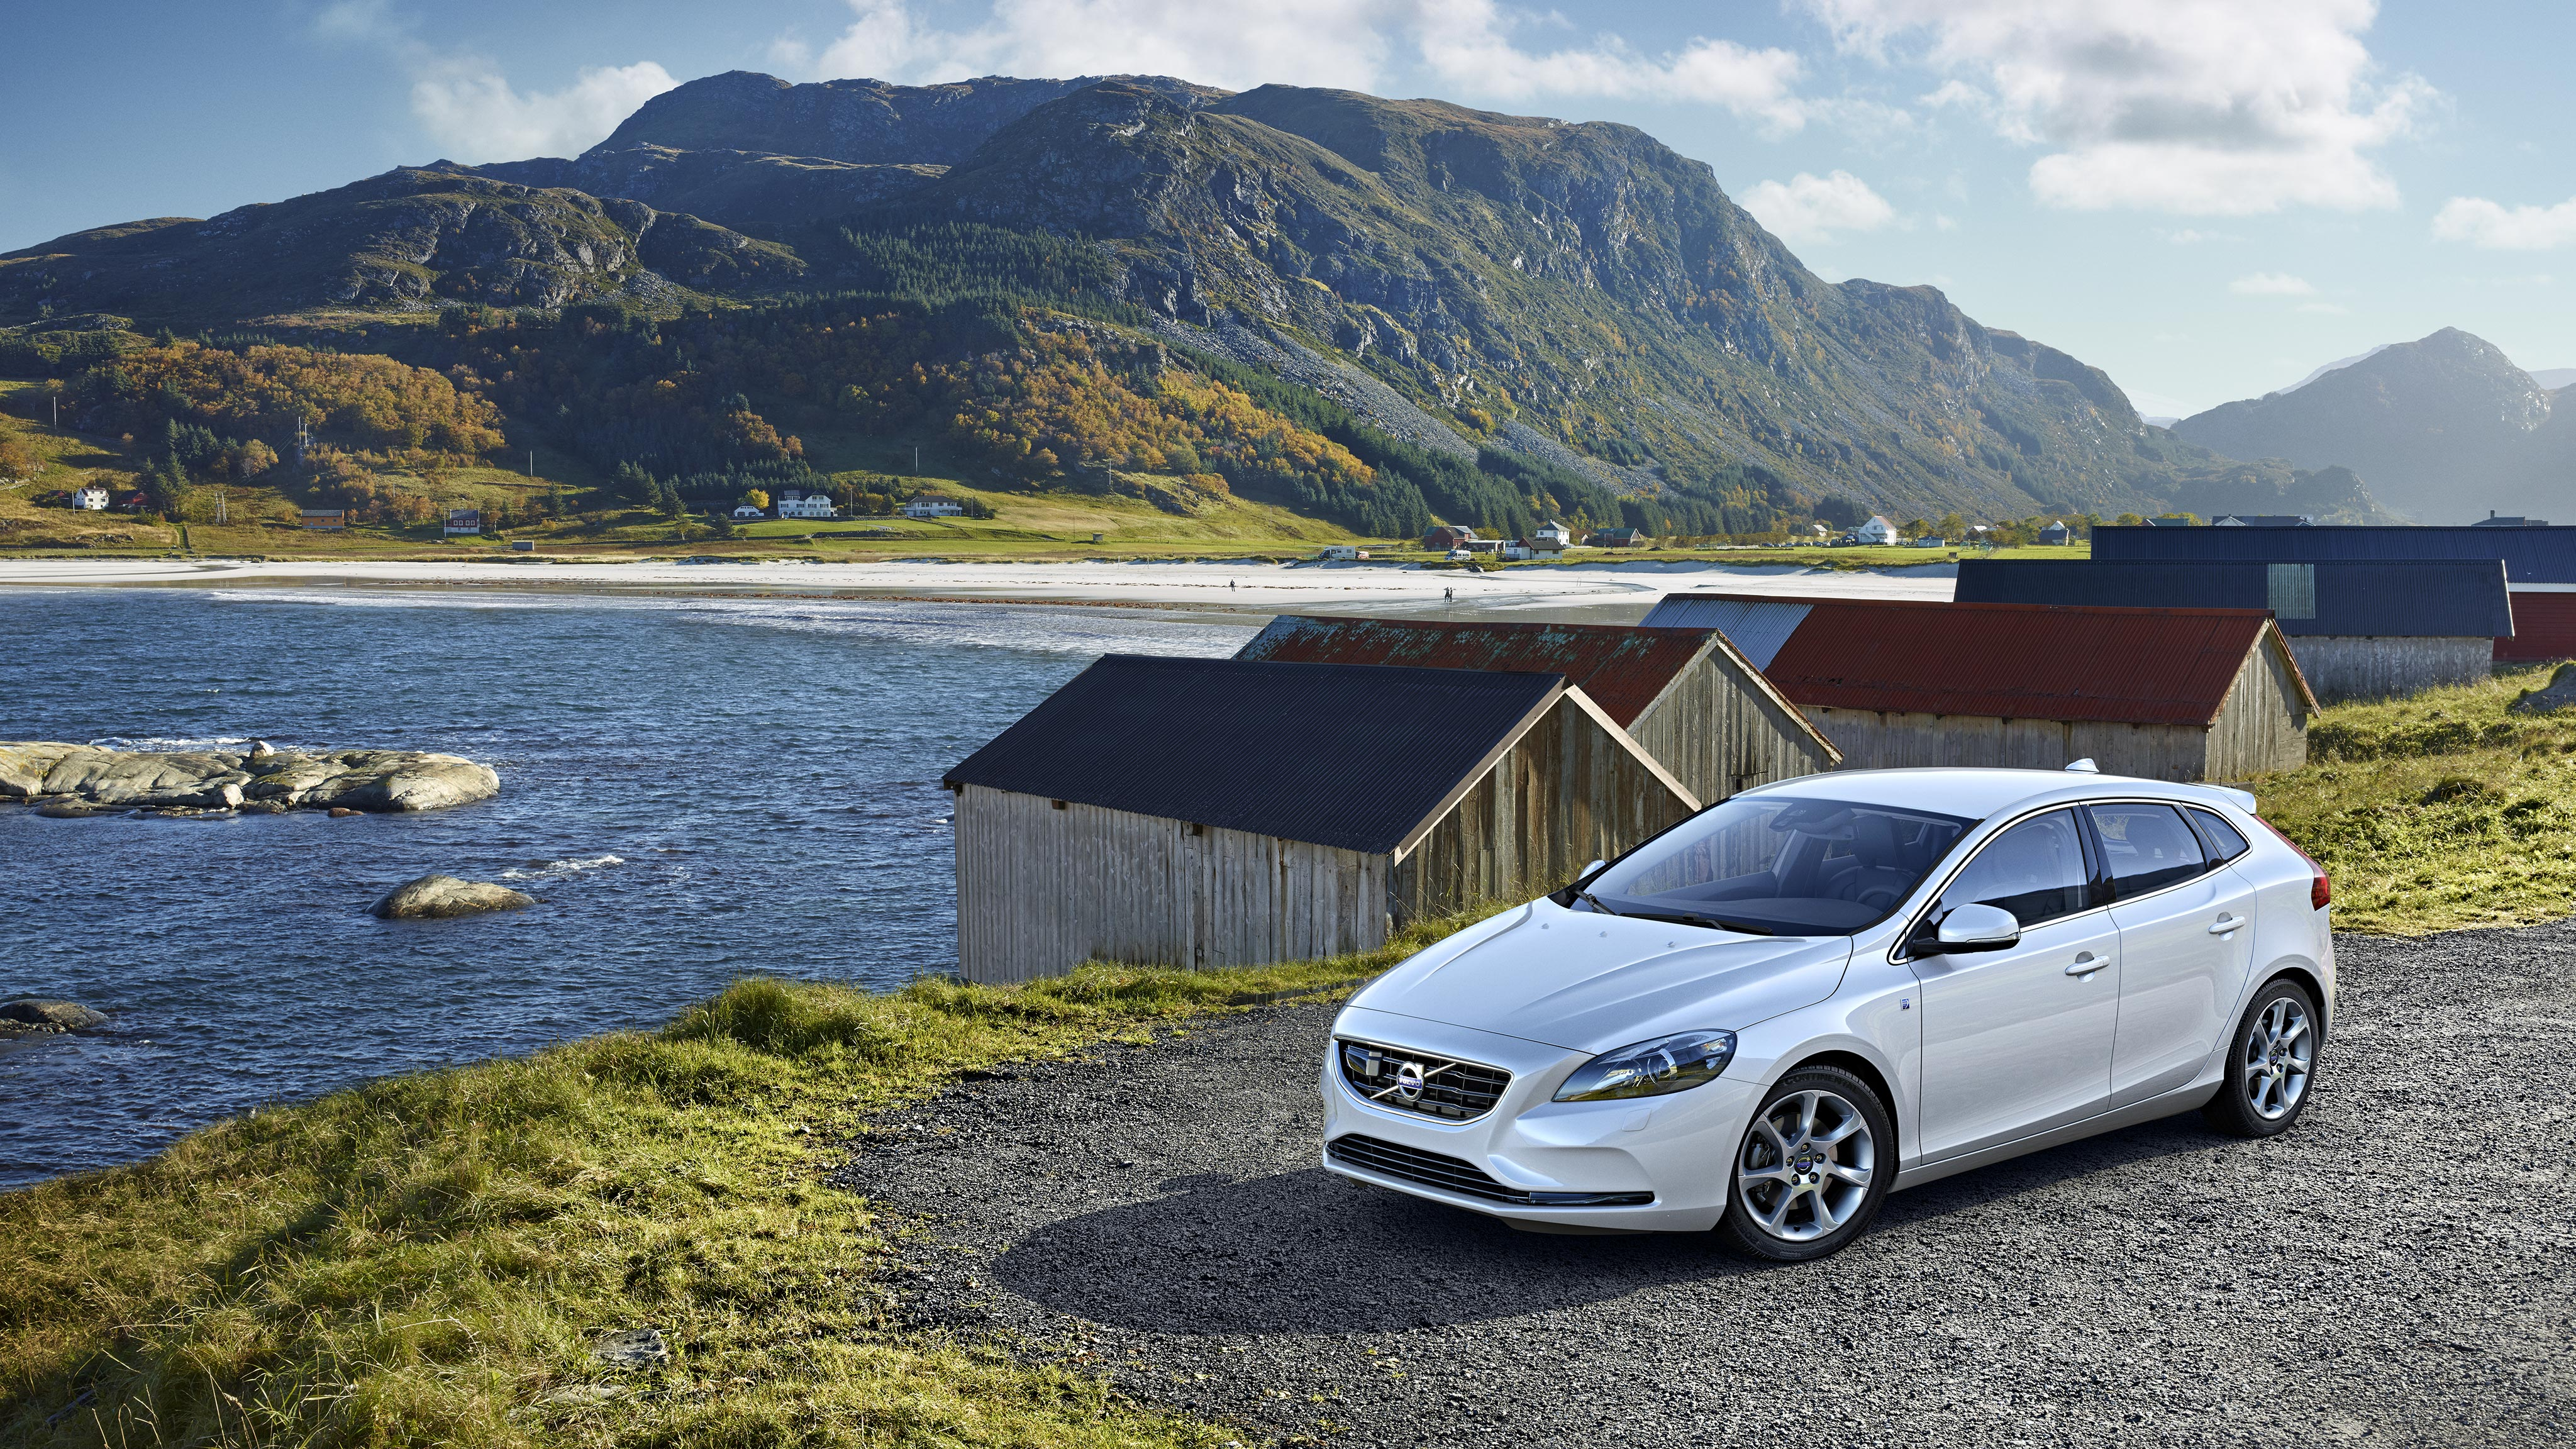 Volvo V40 oceanside